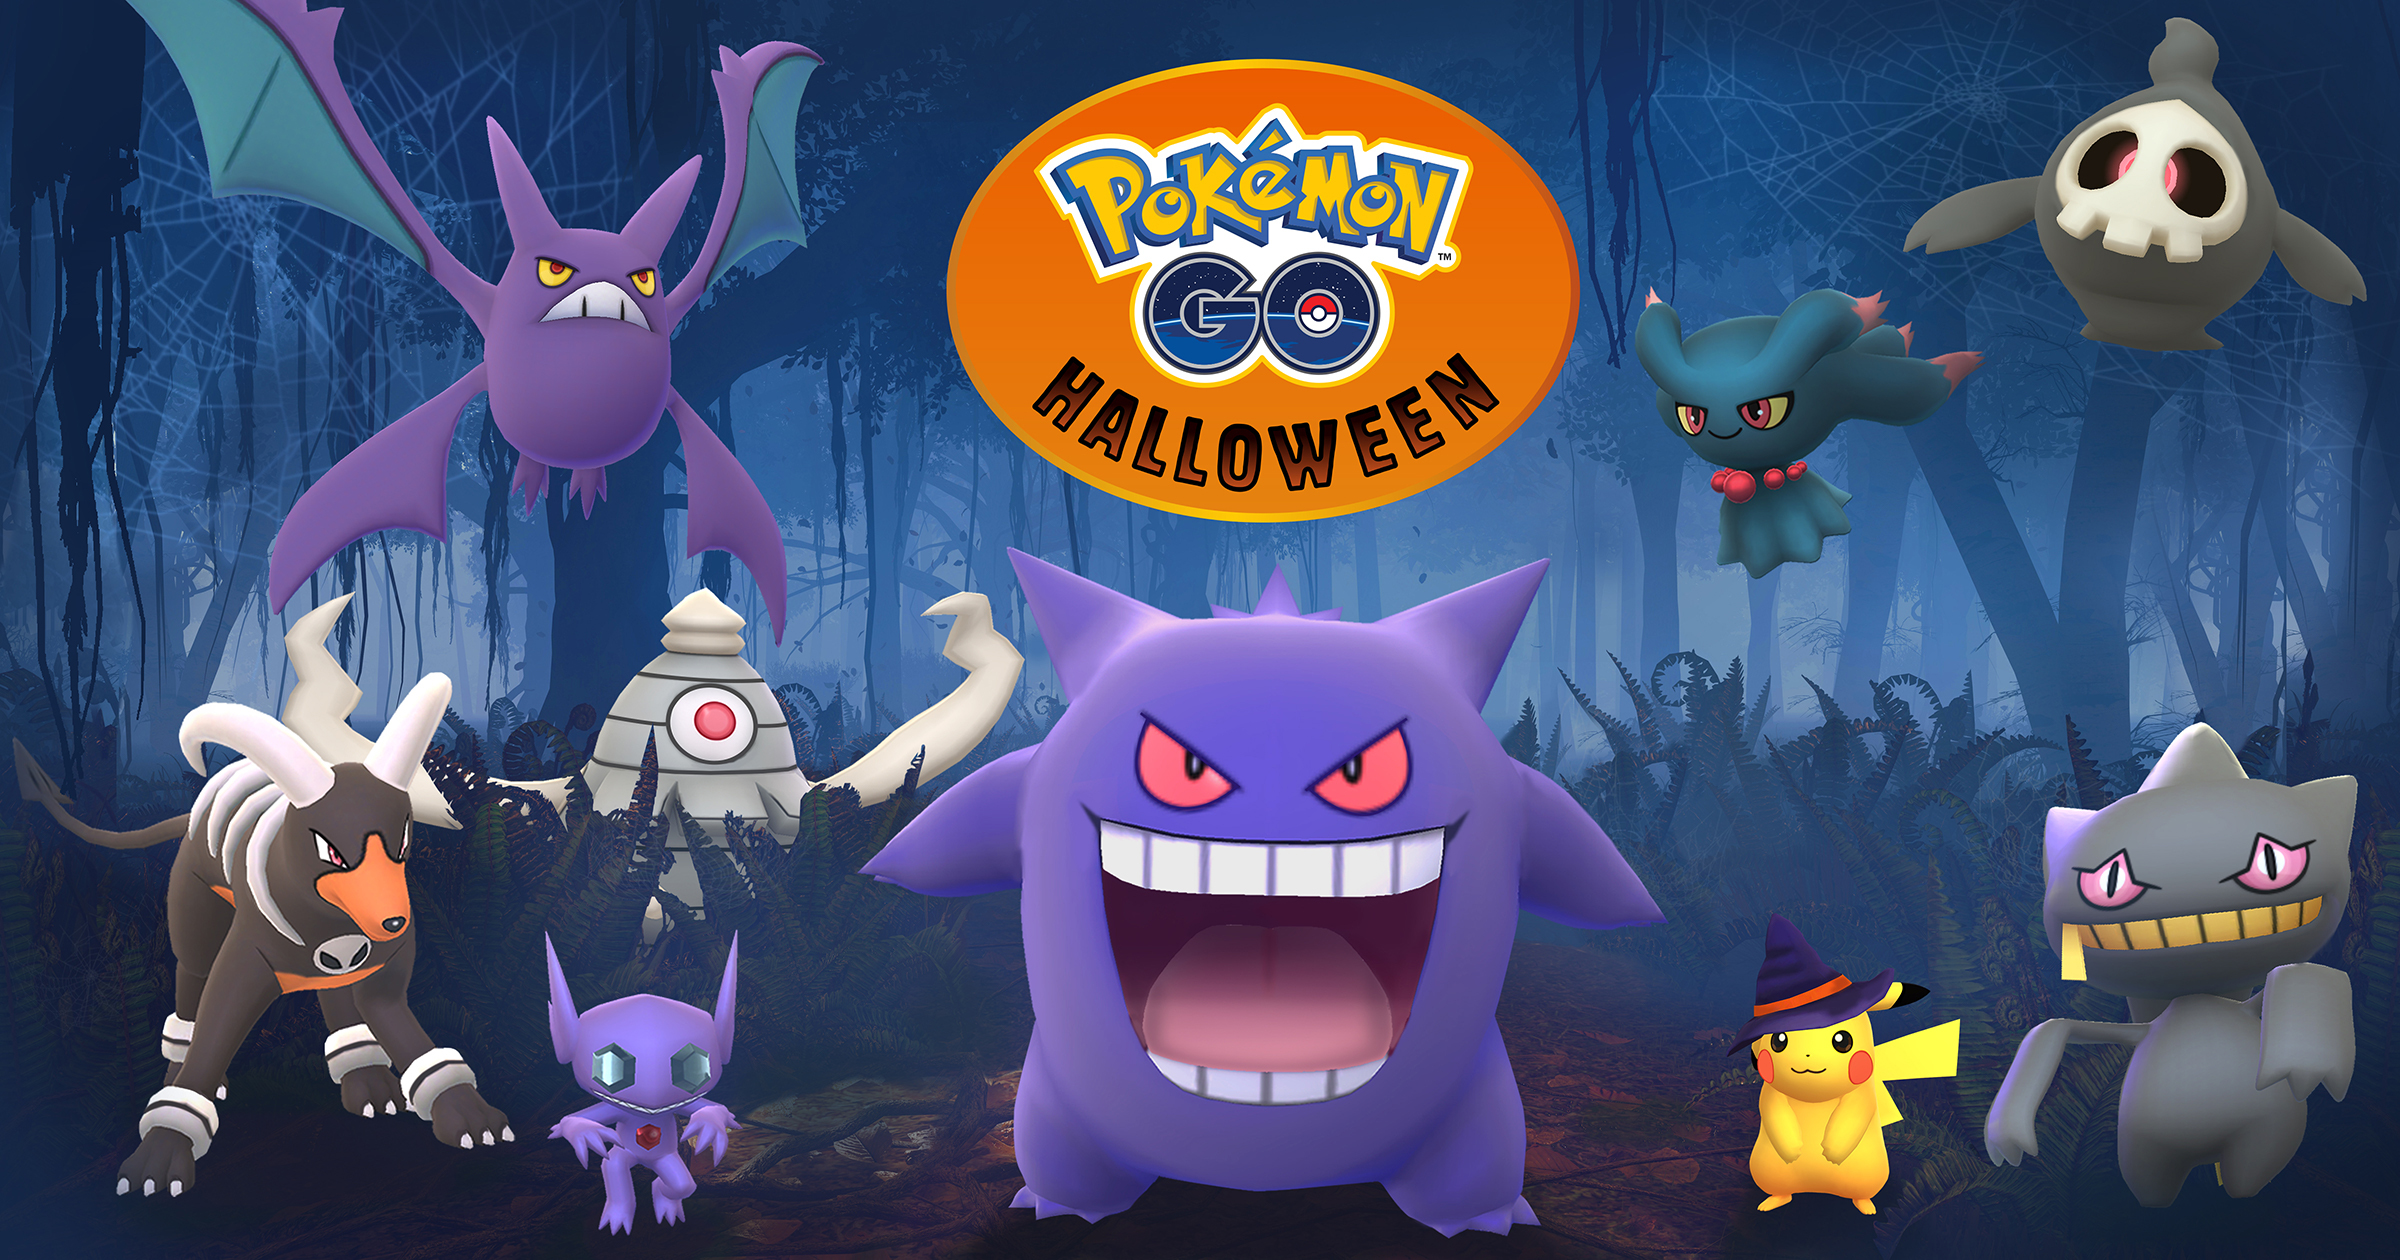 Photo of Pokemon Go Halloween Event Details so Far